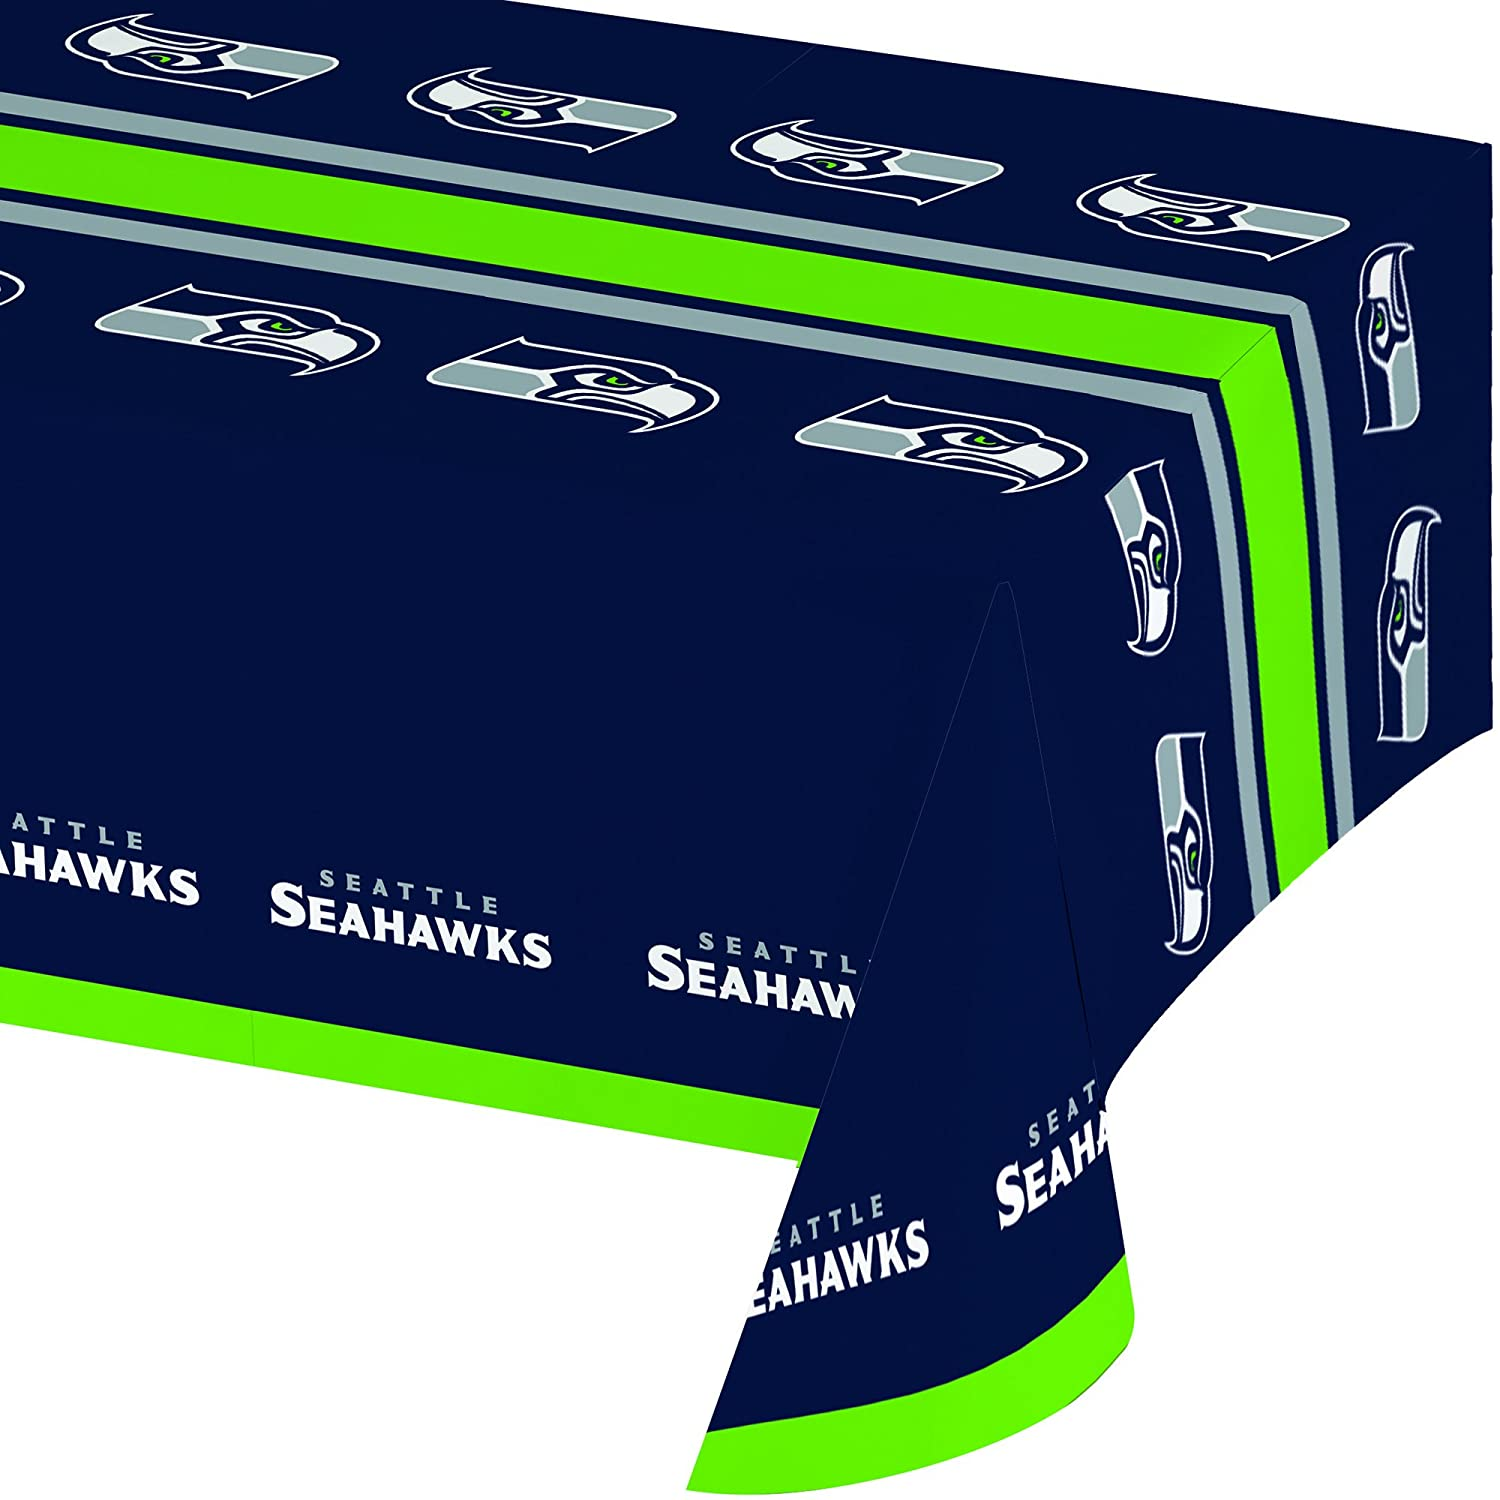 Creative Converting Officially Licensed NFL Plastic Table Cover, 54x102, Seattle Seahawks